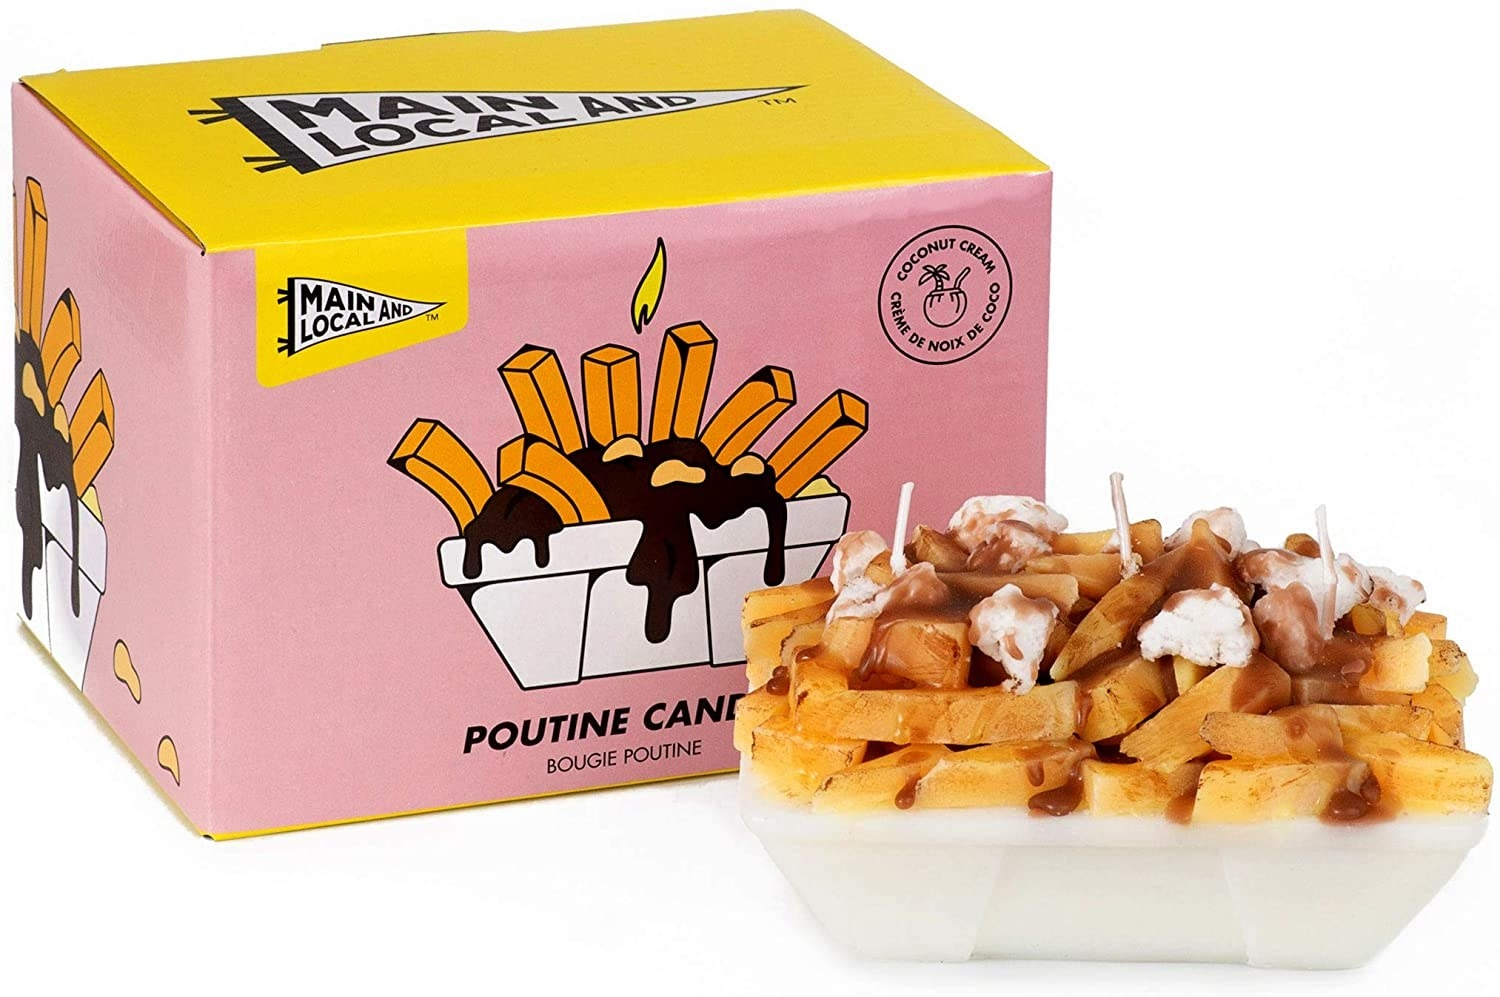 A box with a poutine candle on it with a candle that looks like poutine